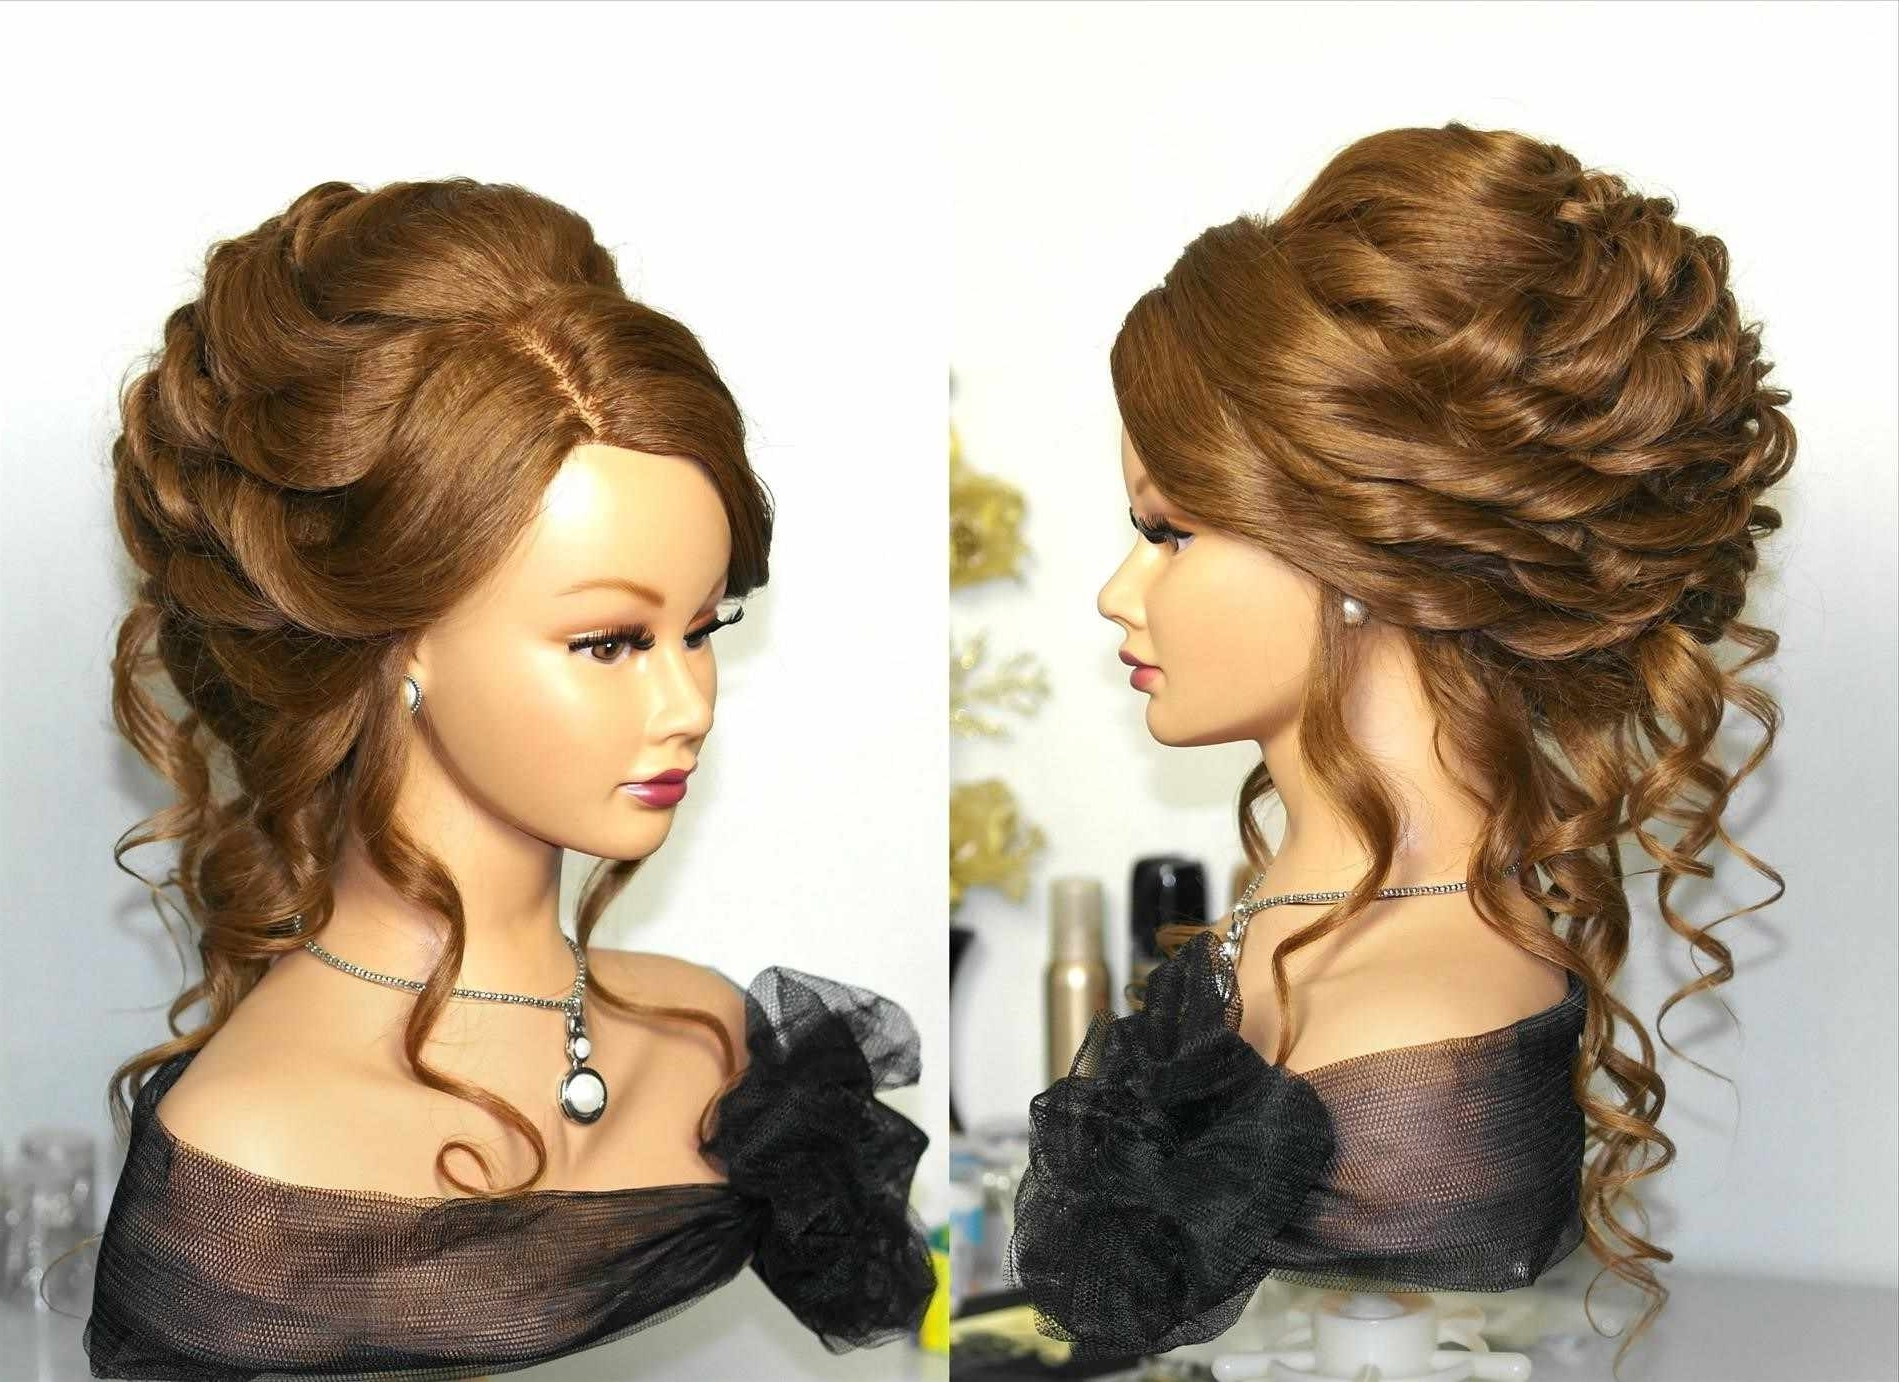 Most Wedding Hairstyle For Chubby Face Favorable Hairstyles For Your Pertaining To Most Up To Date Wedding Hairstyles For Your Face Shape (View 14 of 15)